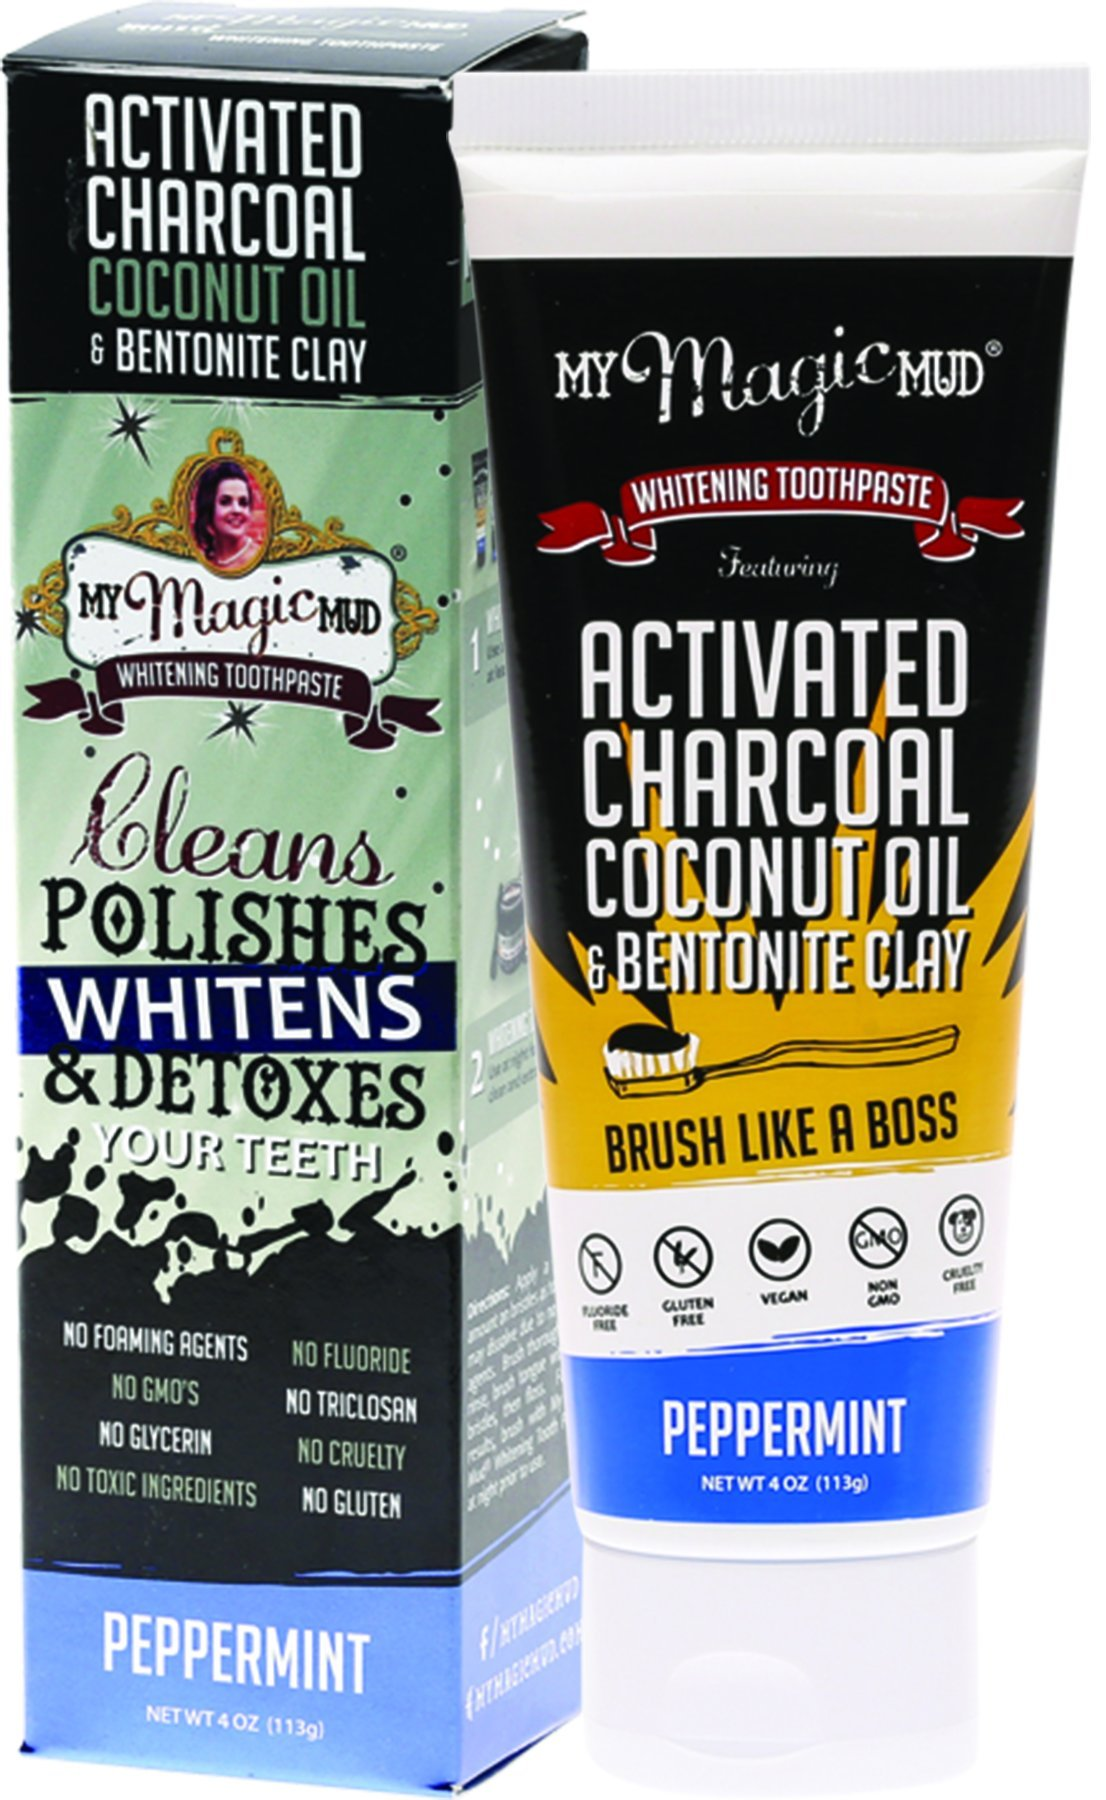 My Magic Mud Activated Charcoal Toothpaste Peppermint (4 oz)